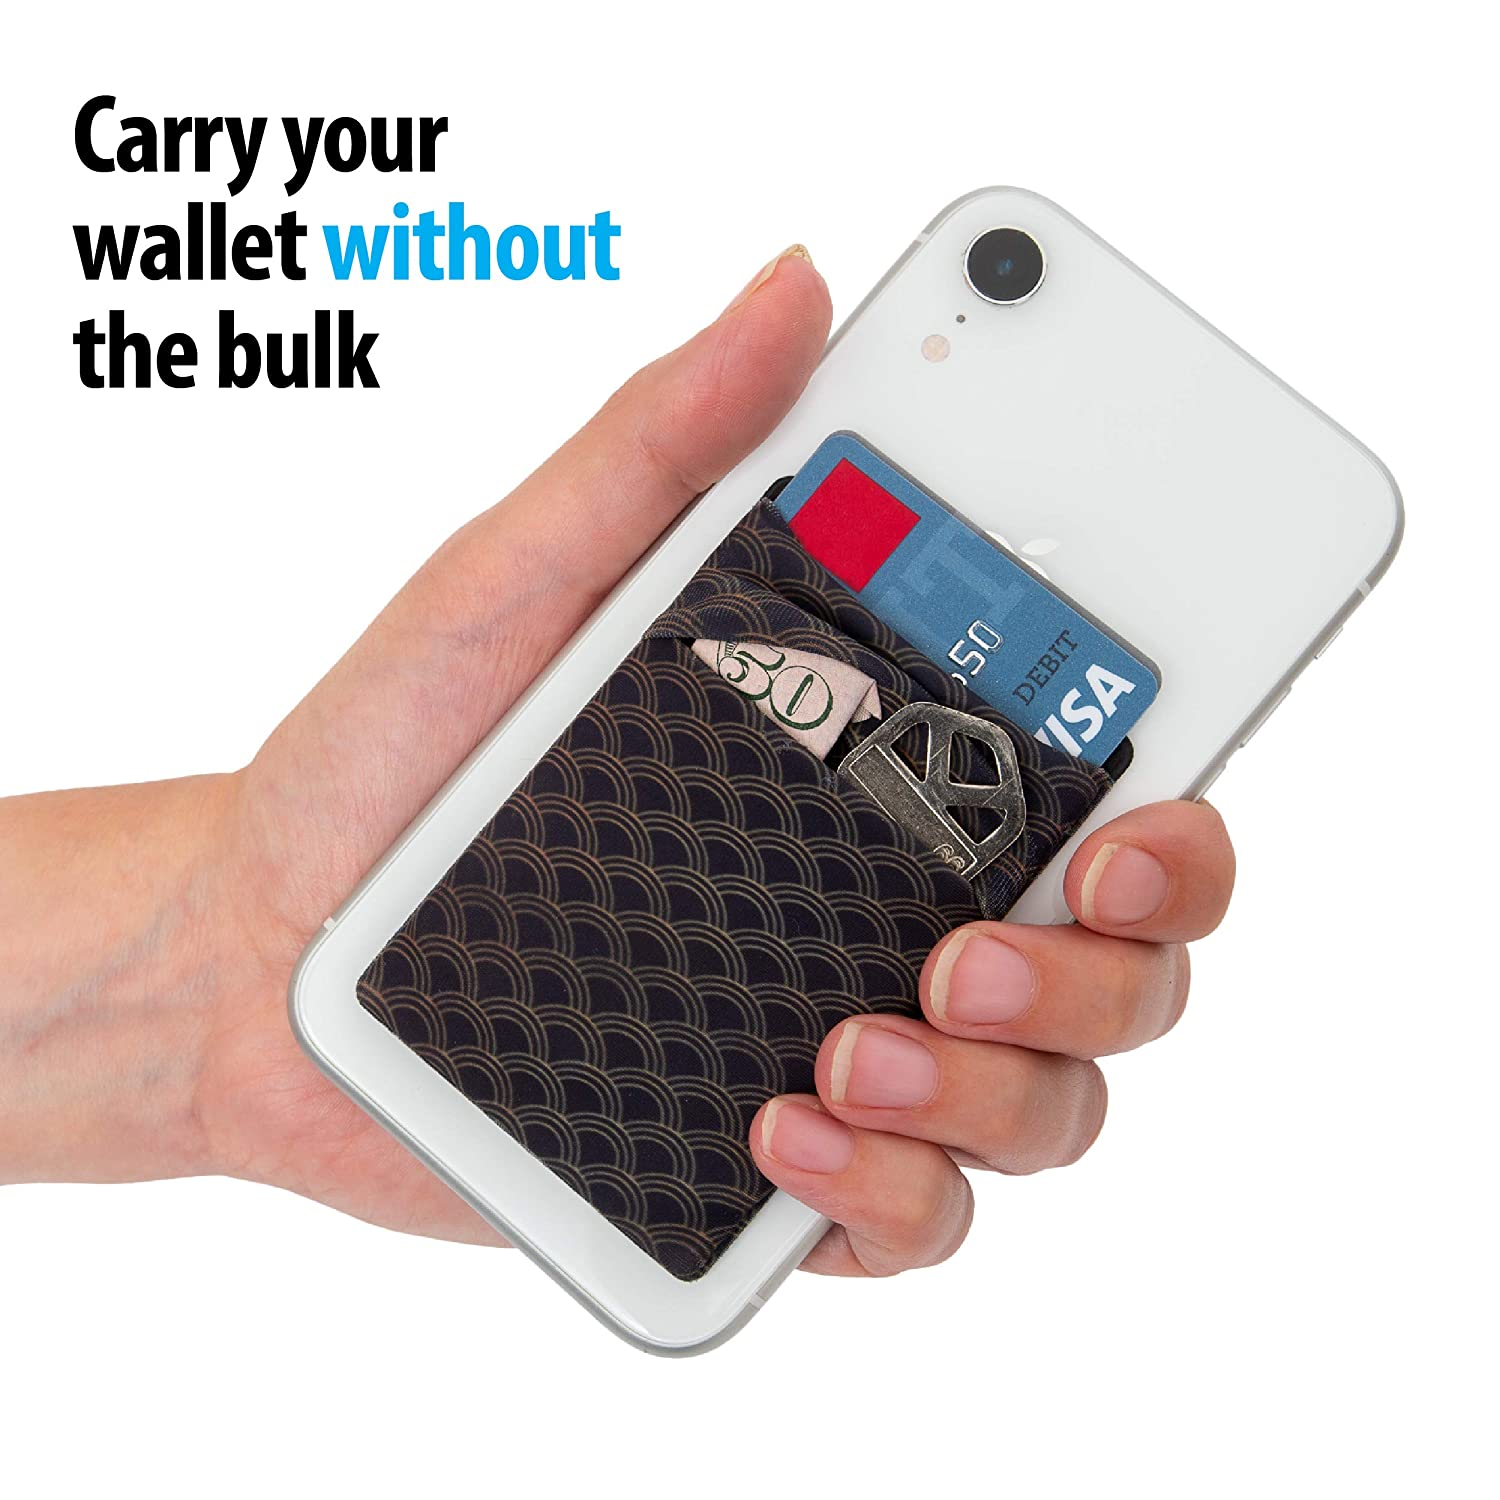 Two Android and All Smartphones Stretchy Cell Phone Stick on Wallet Card Holder Phone Pocket for iPhone